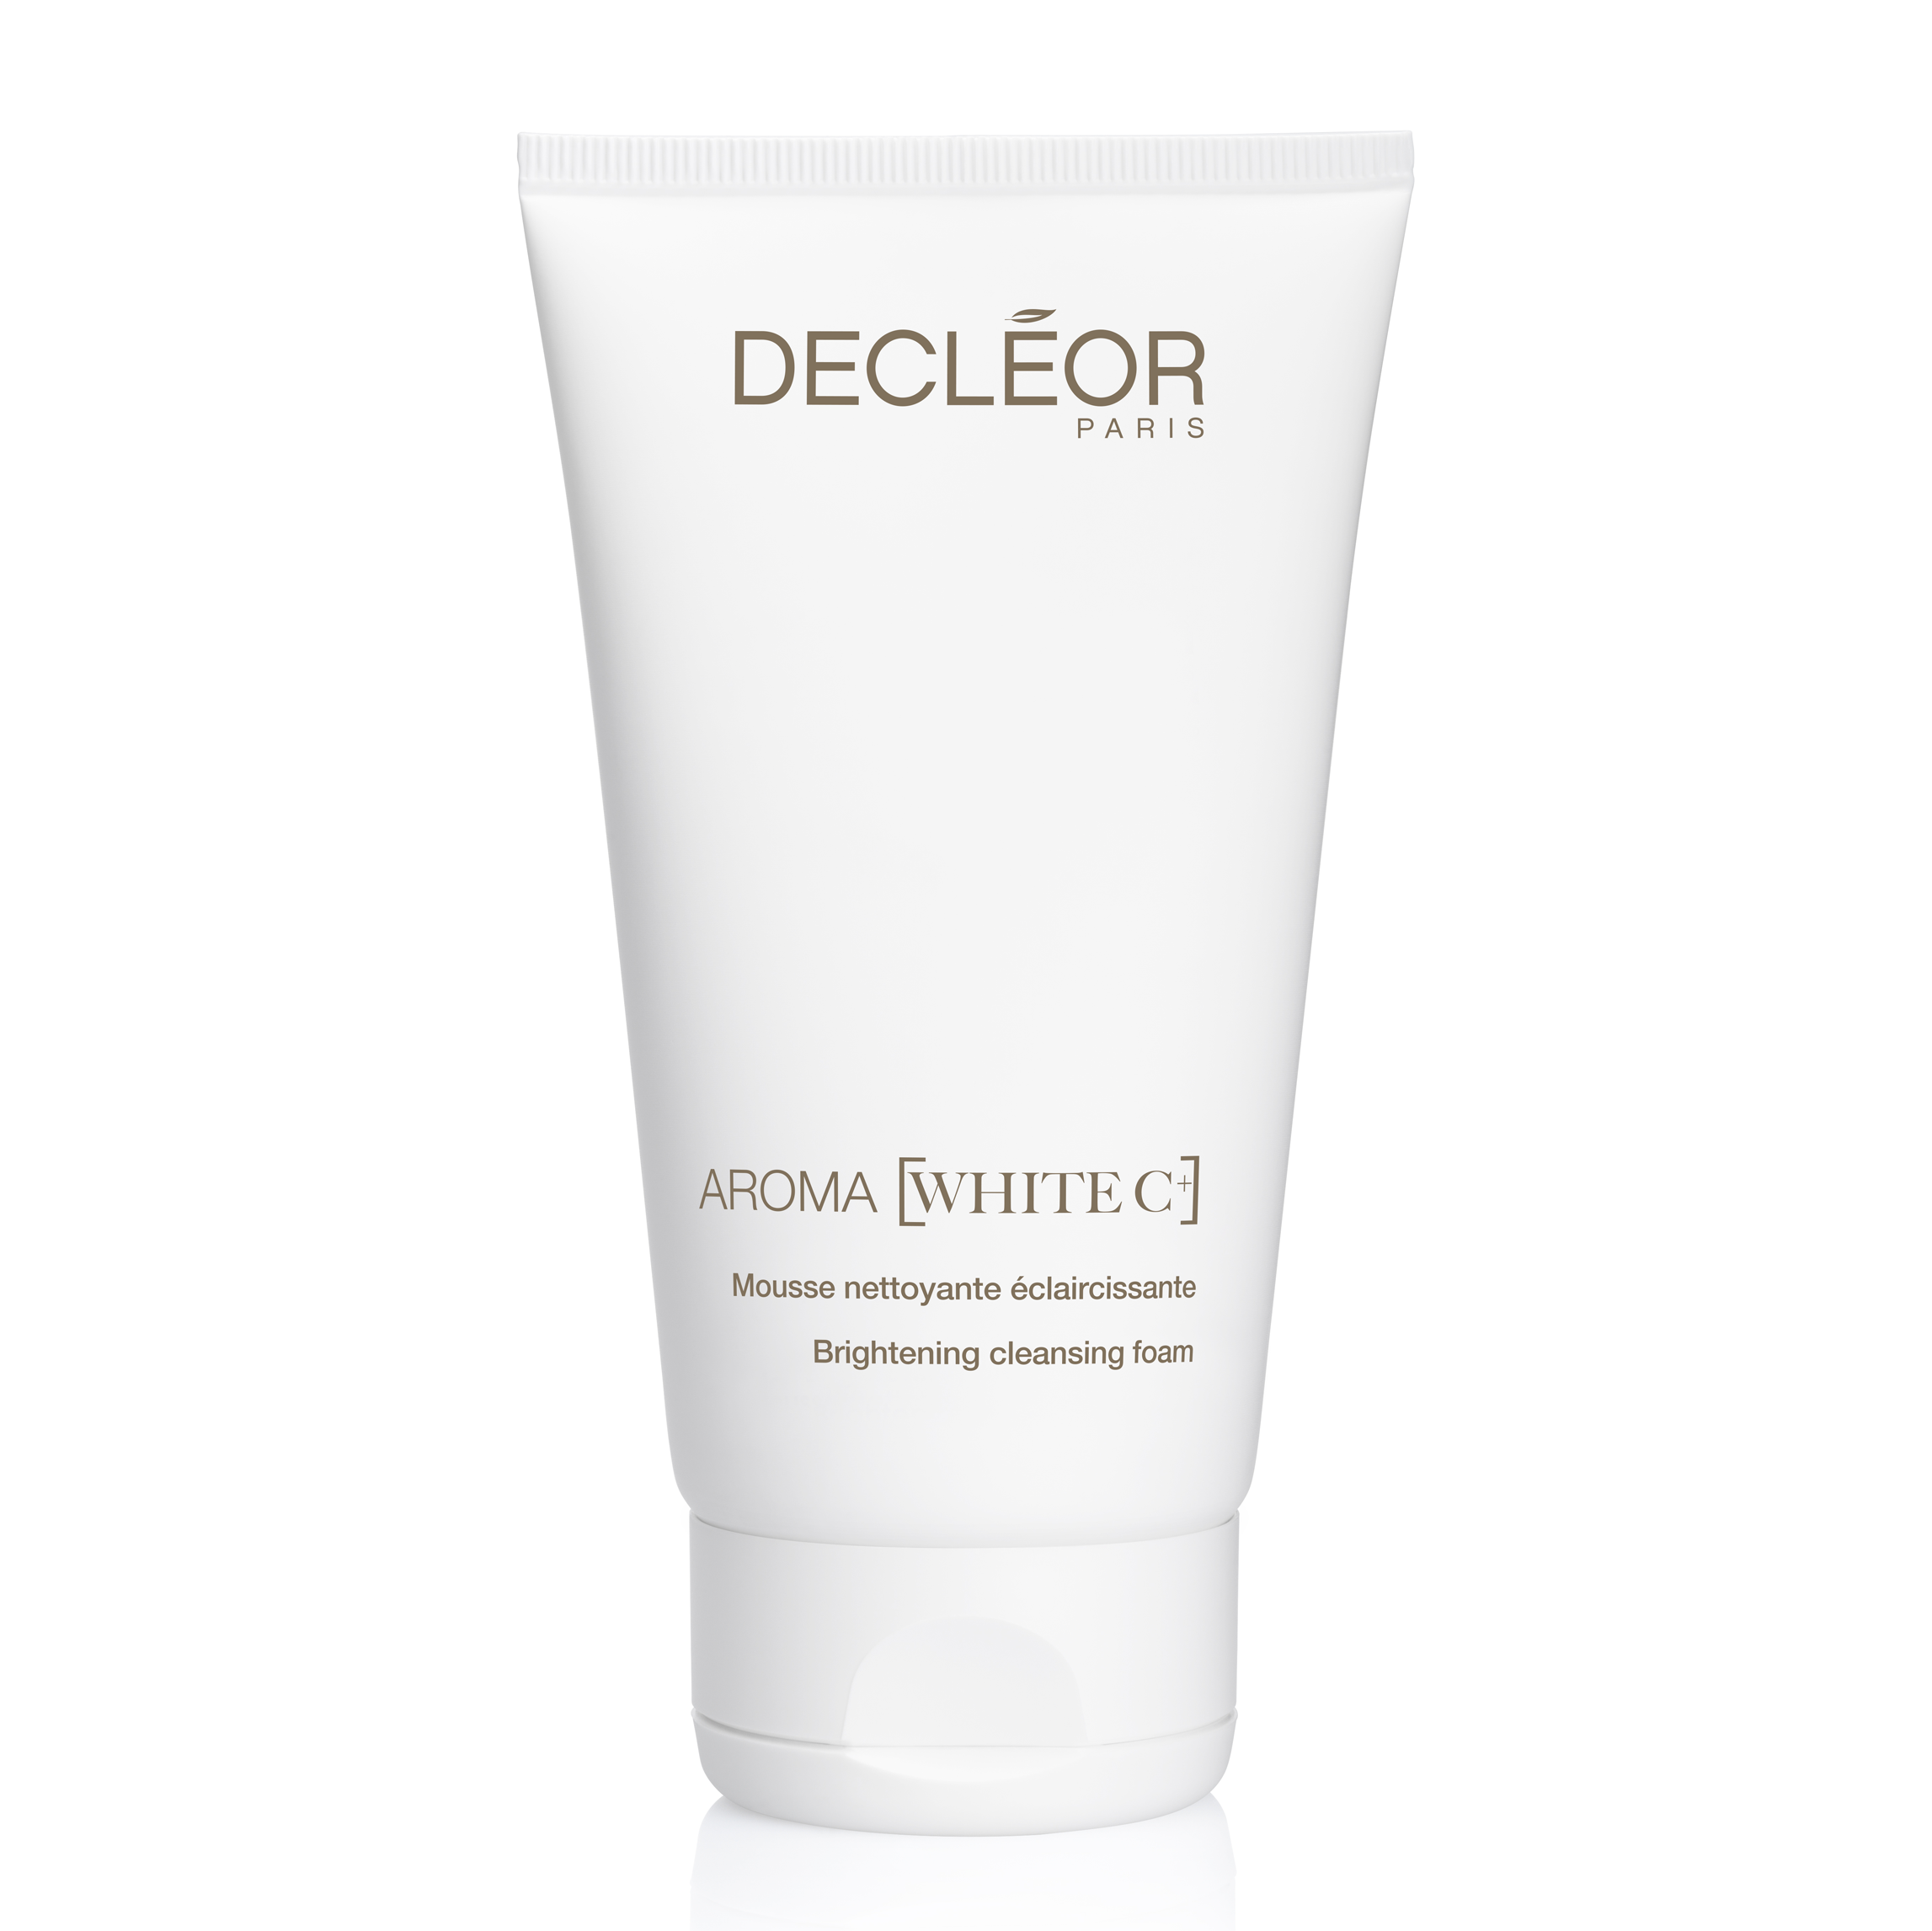 Image of Decleor Aroma White C+ Brightening Cleansing Foam 150ml